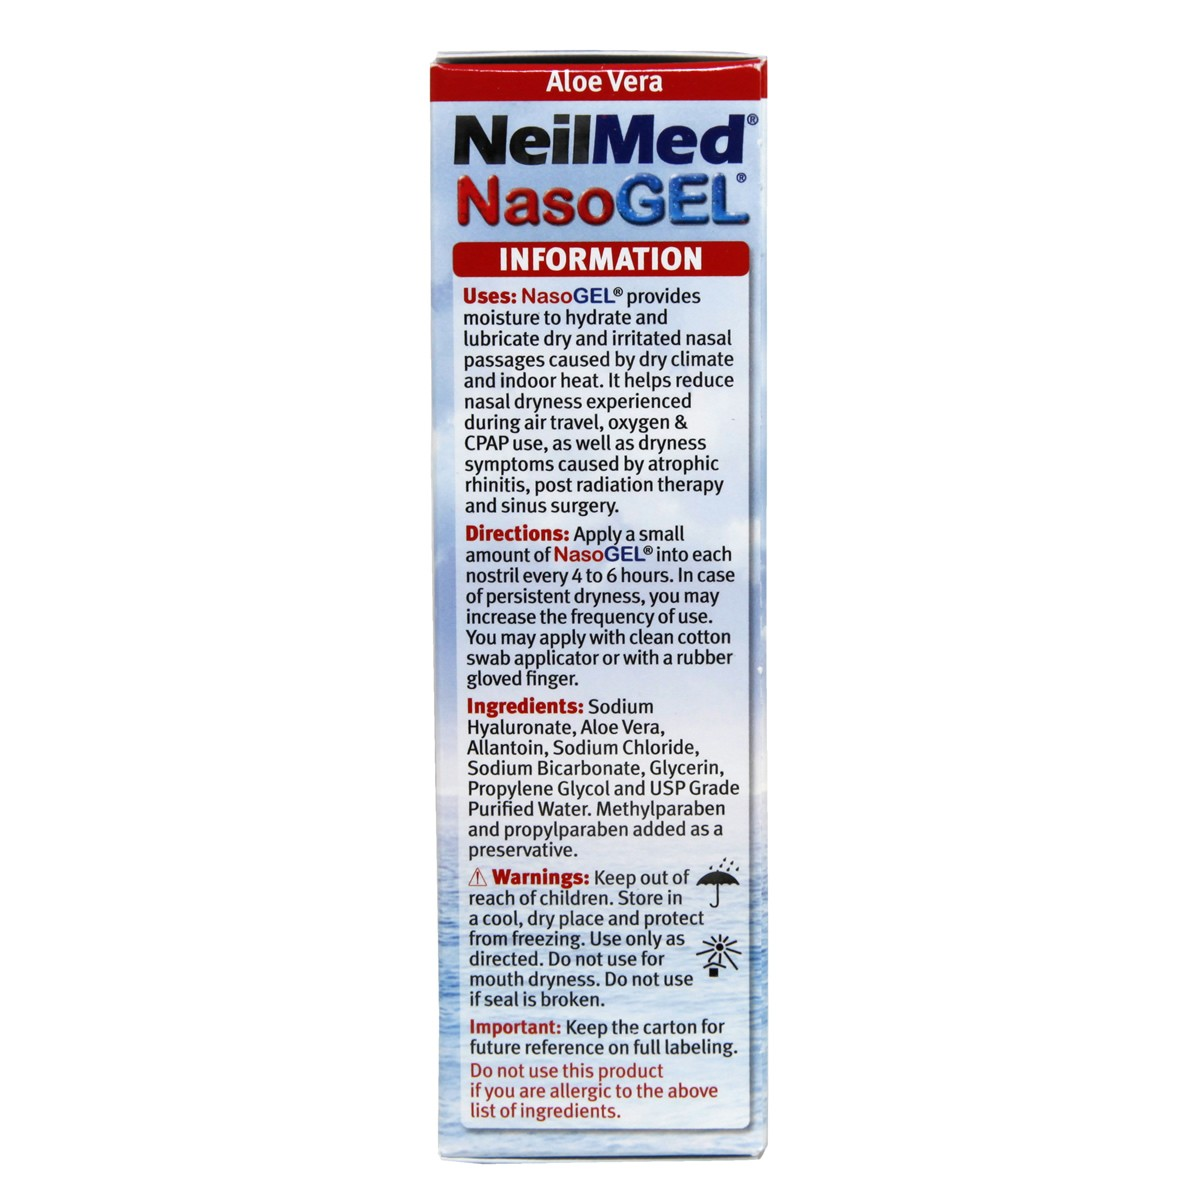 NeilMed NasoGel for Dry Noses